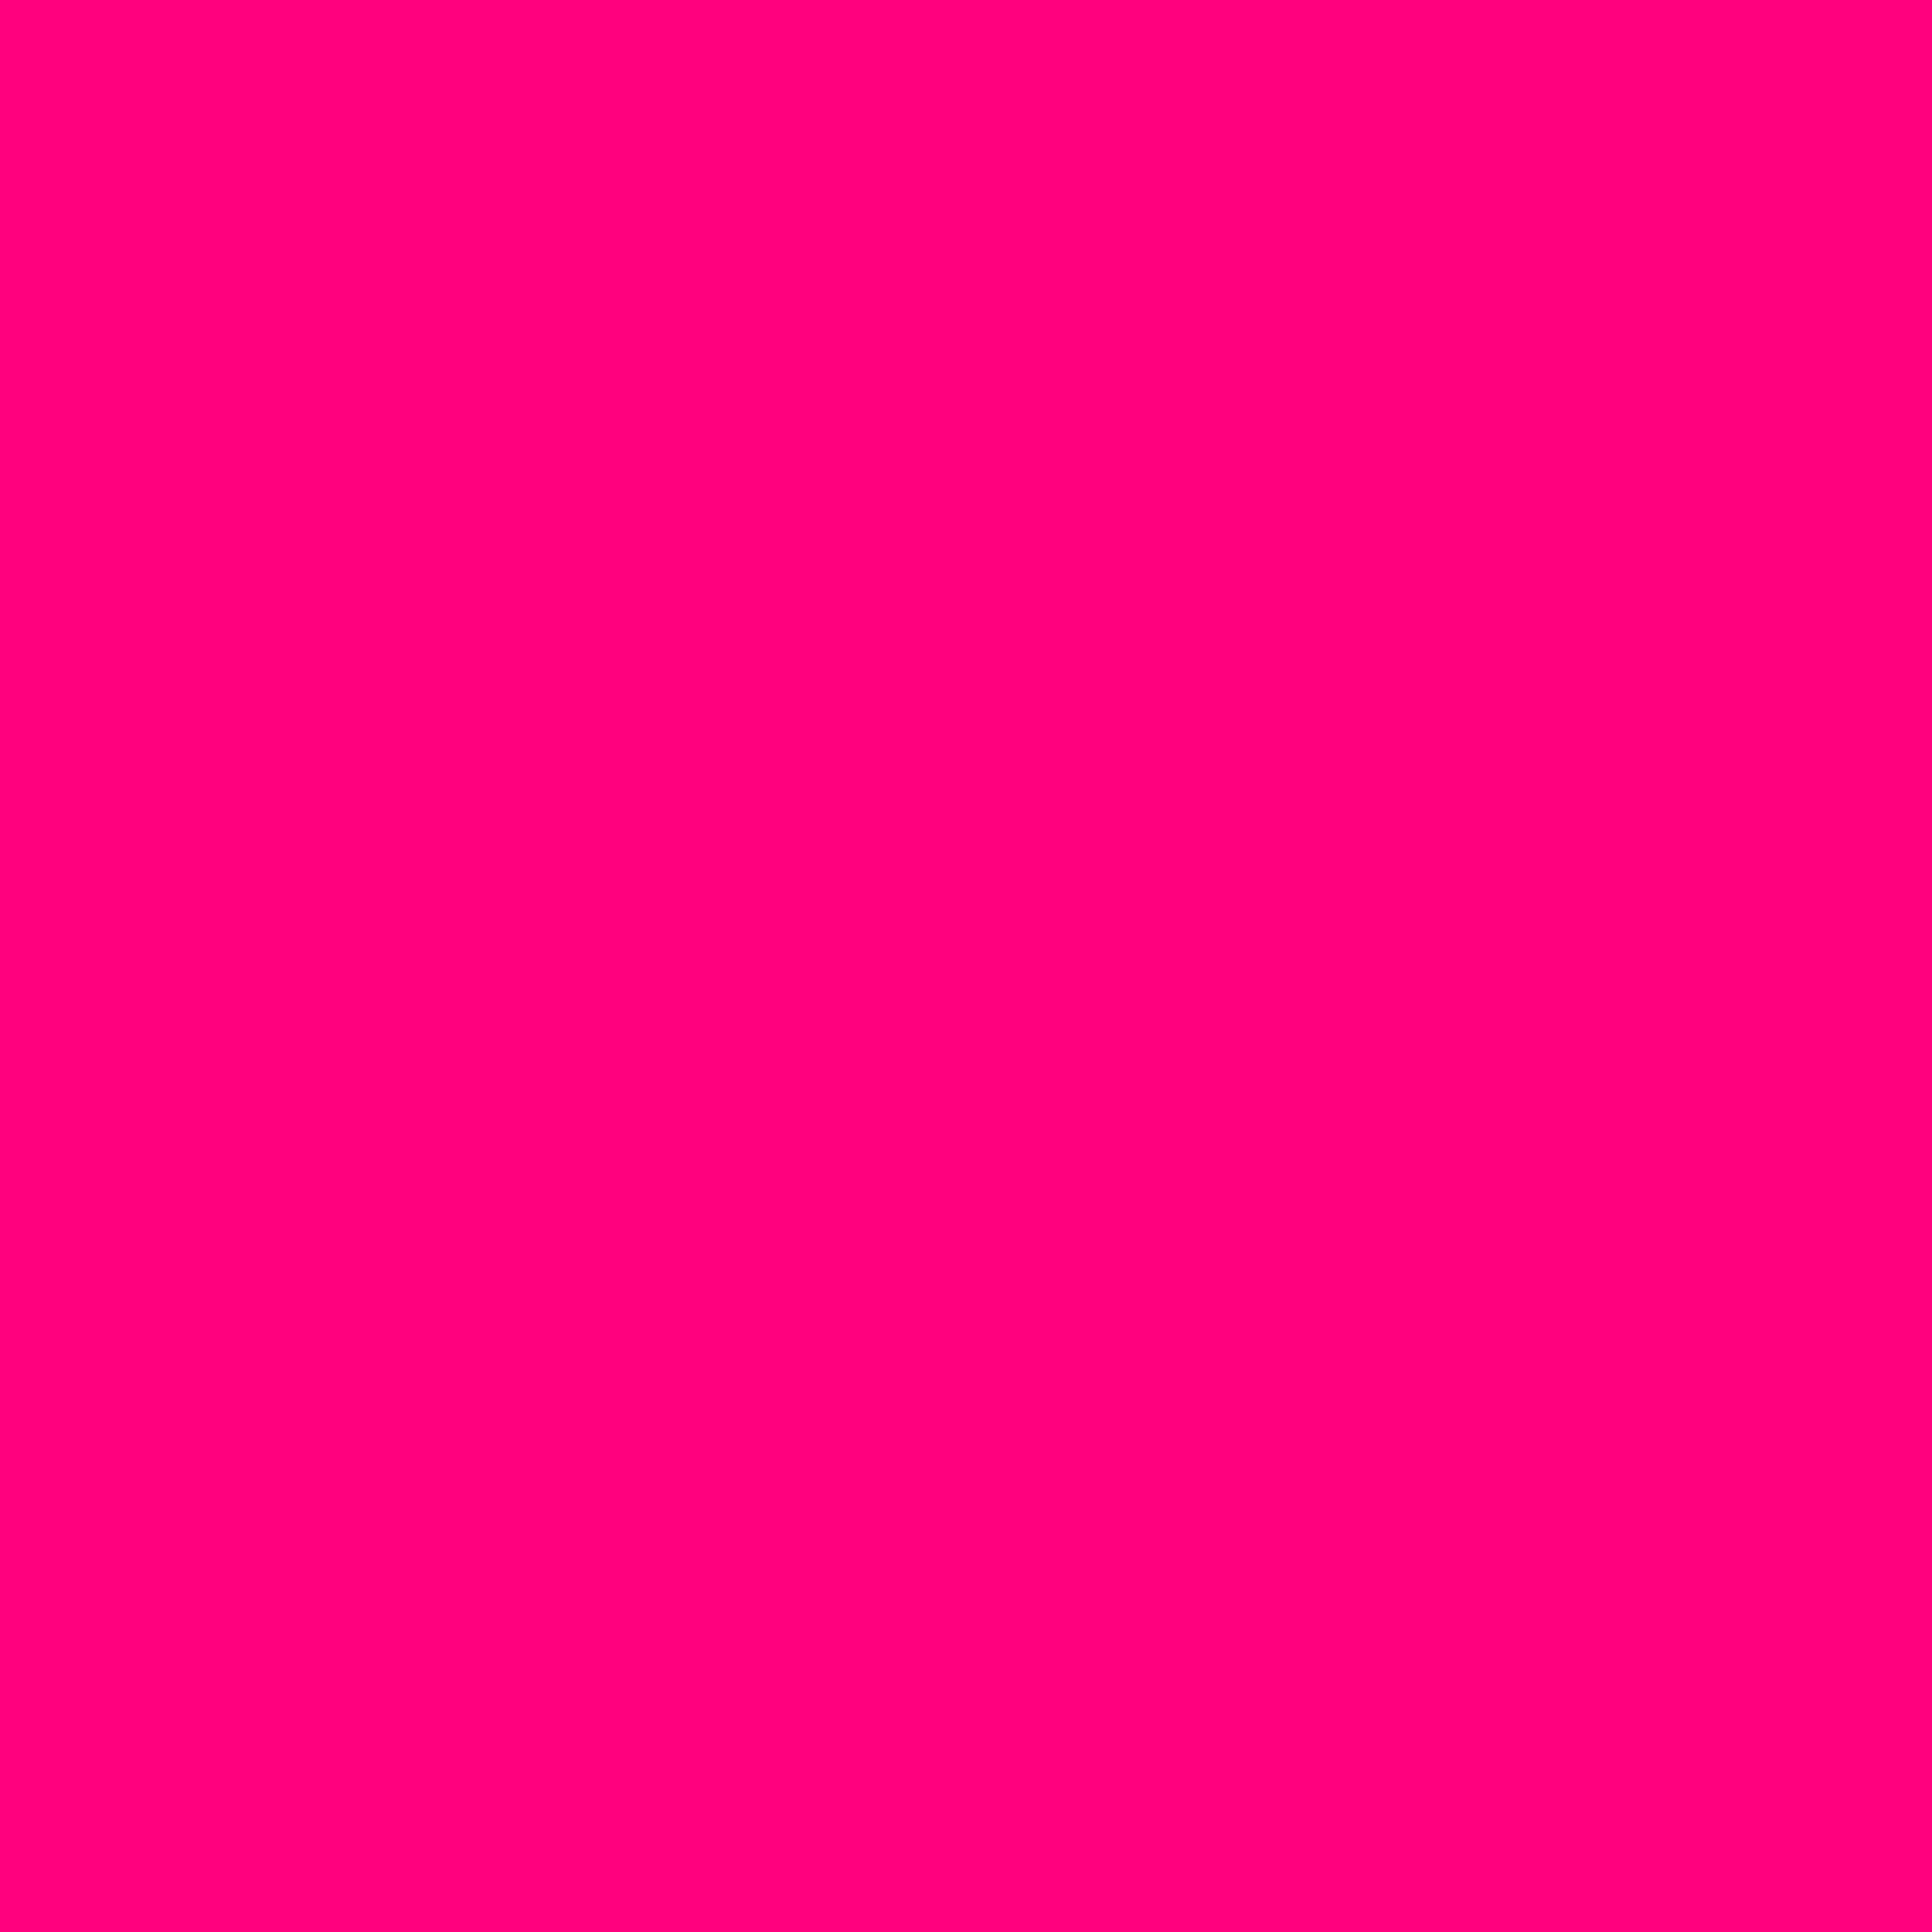 3600x3600 Rose Solid Color Background